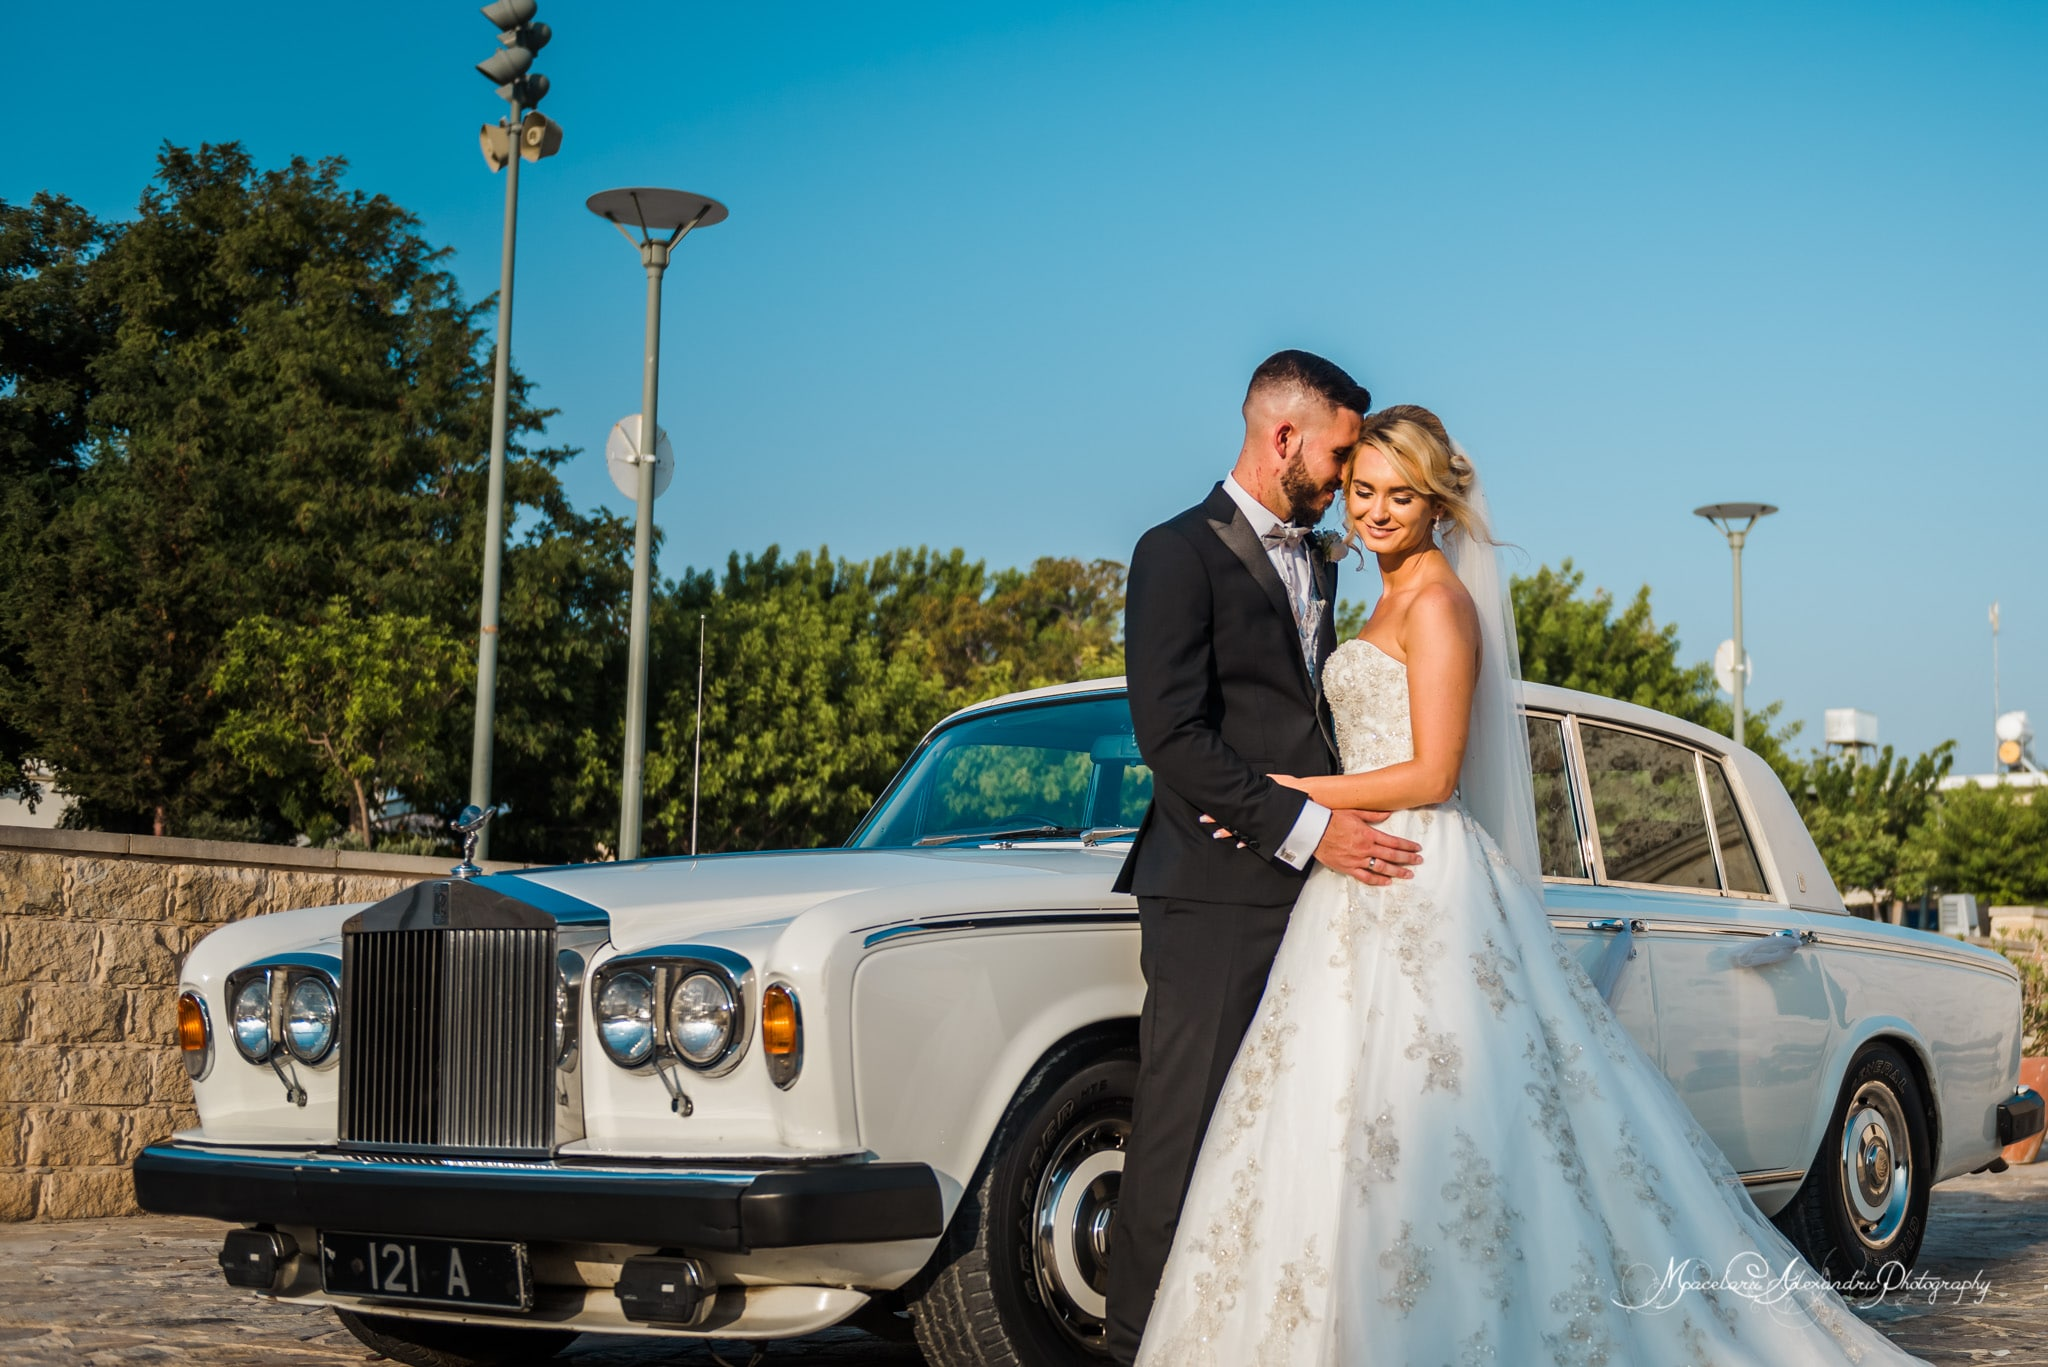 Wedding photography in Paphos - Portrait with the bride and groom